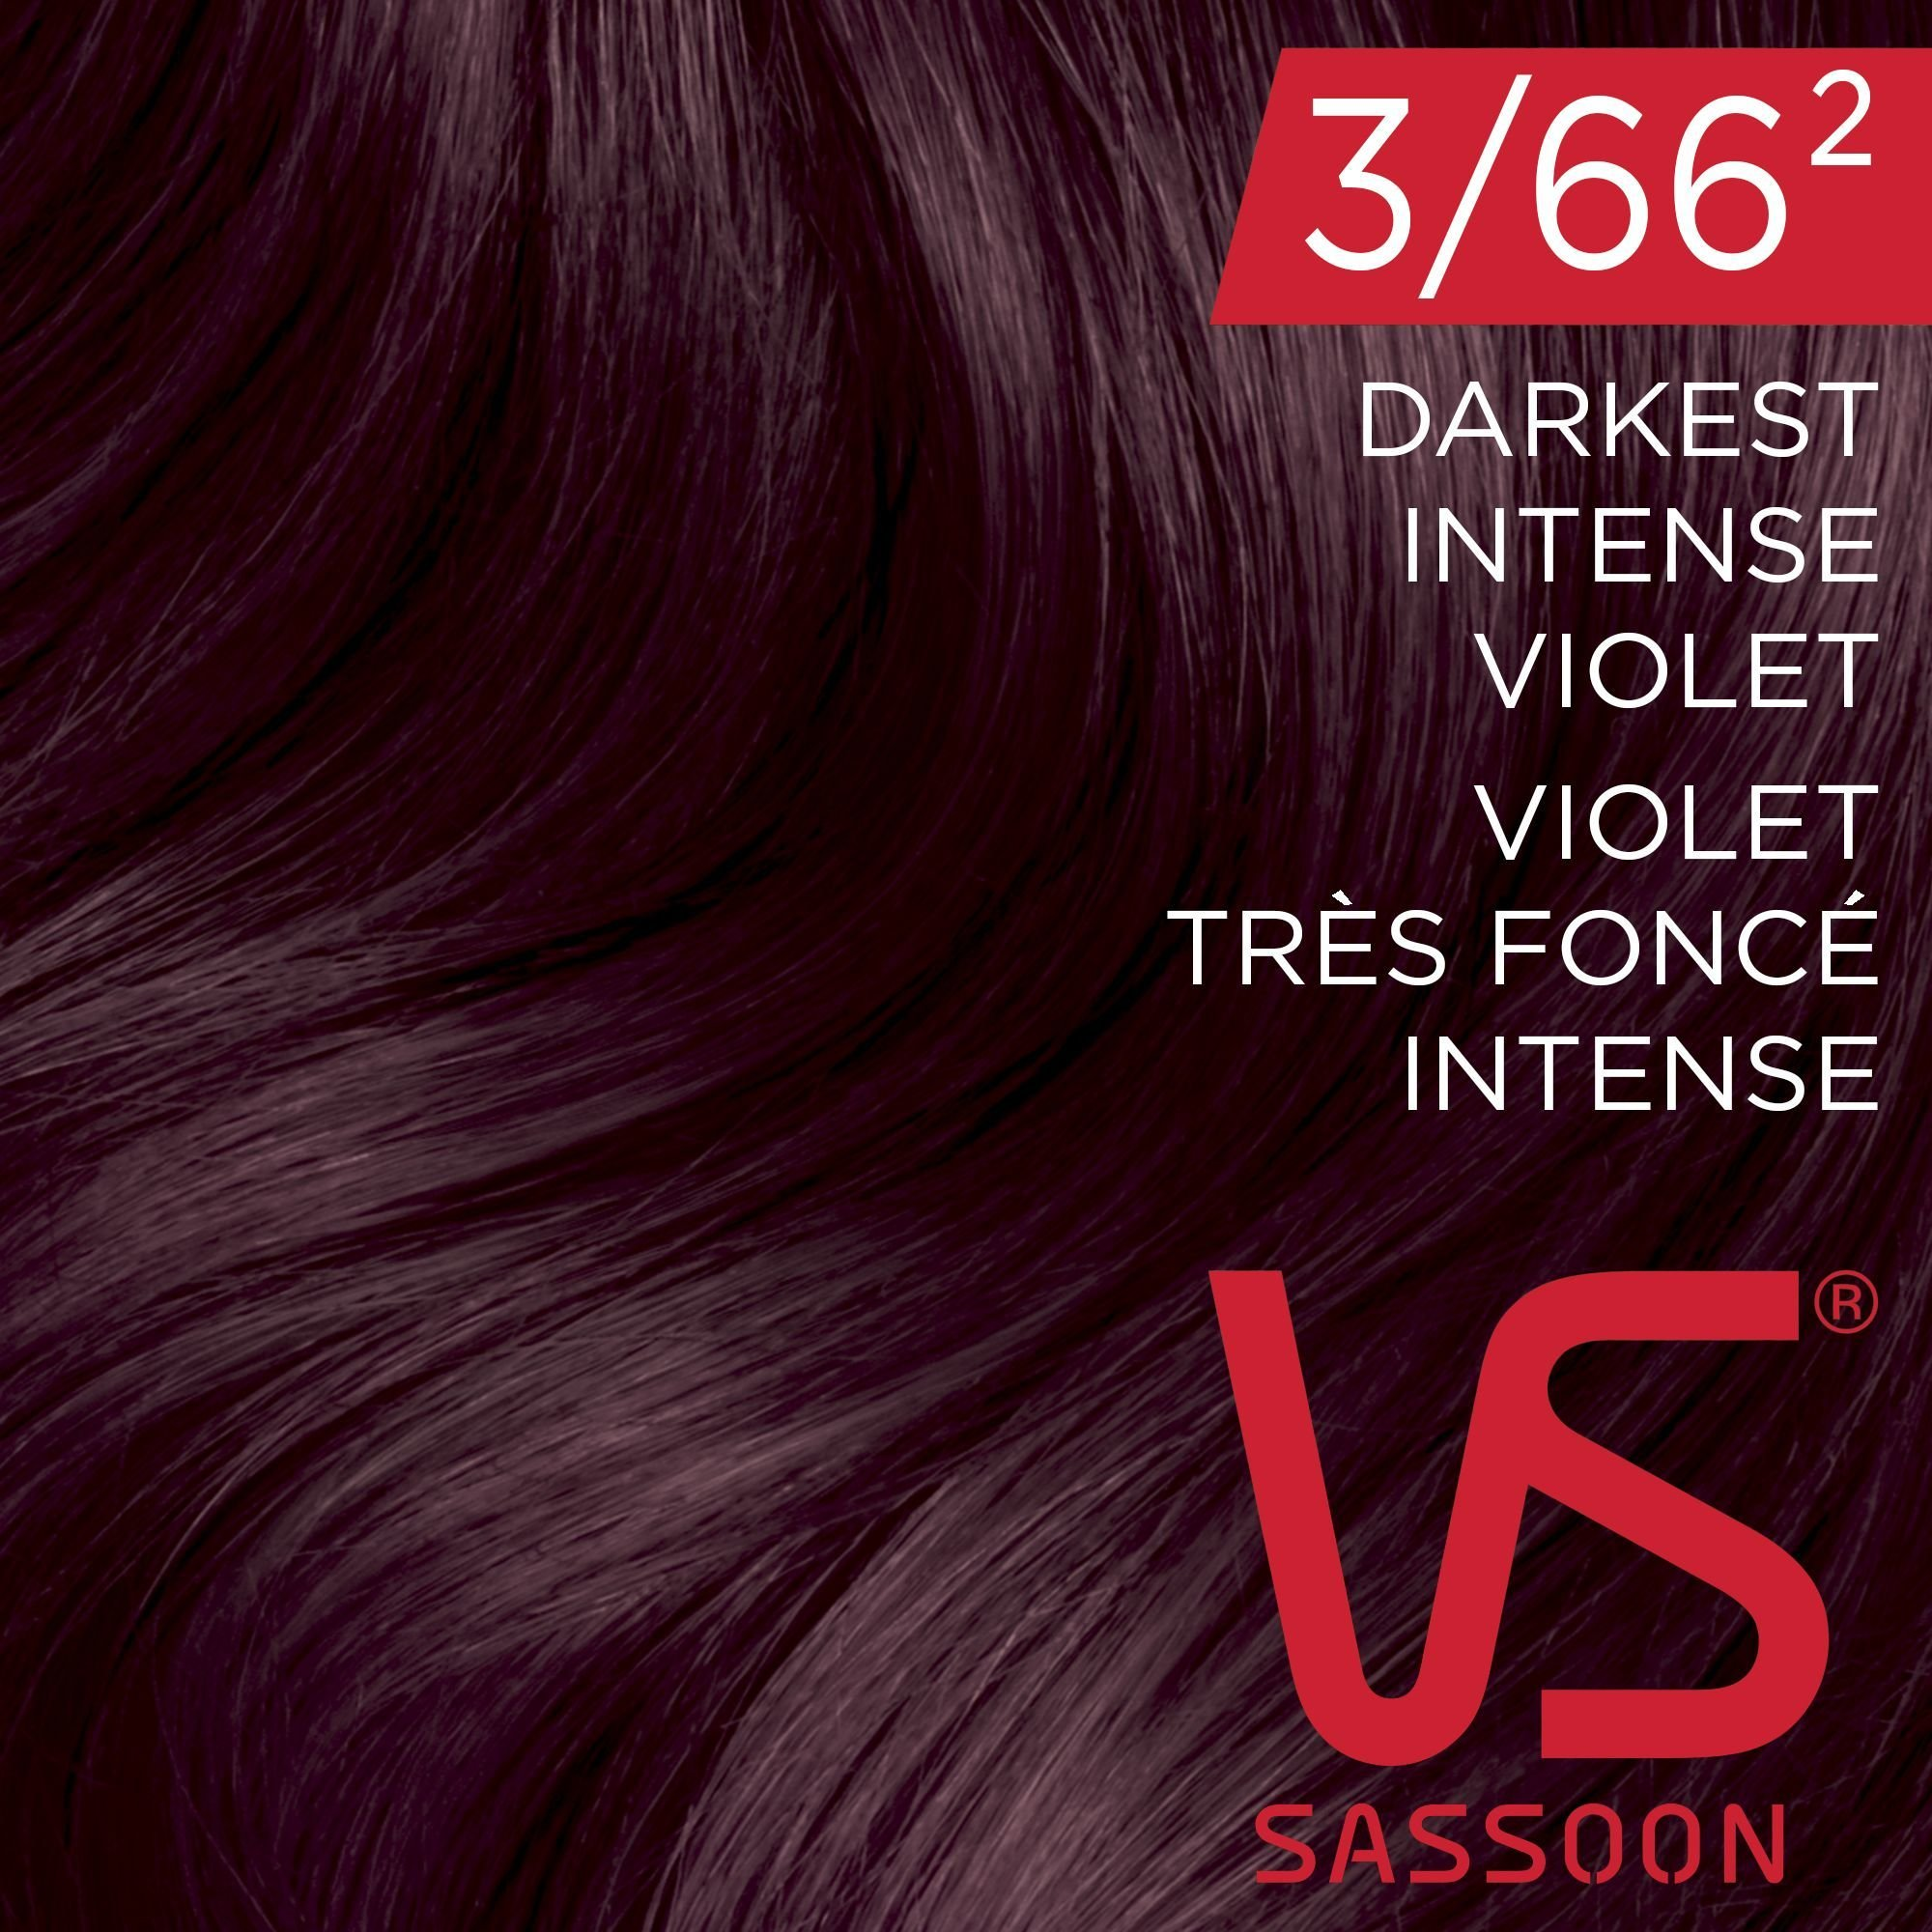 New Diy Purple Hair Color Vidal Sassoon Salonist 3 662 Ideas With Pictures